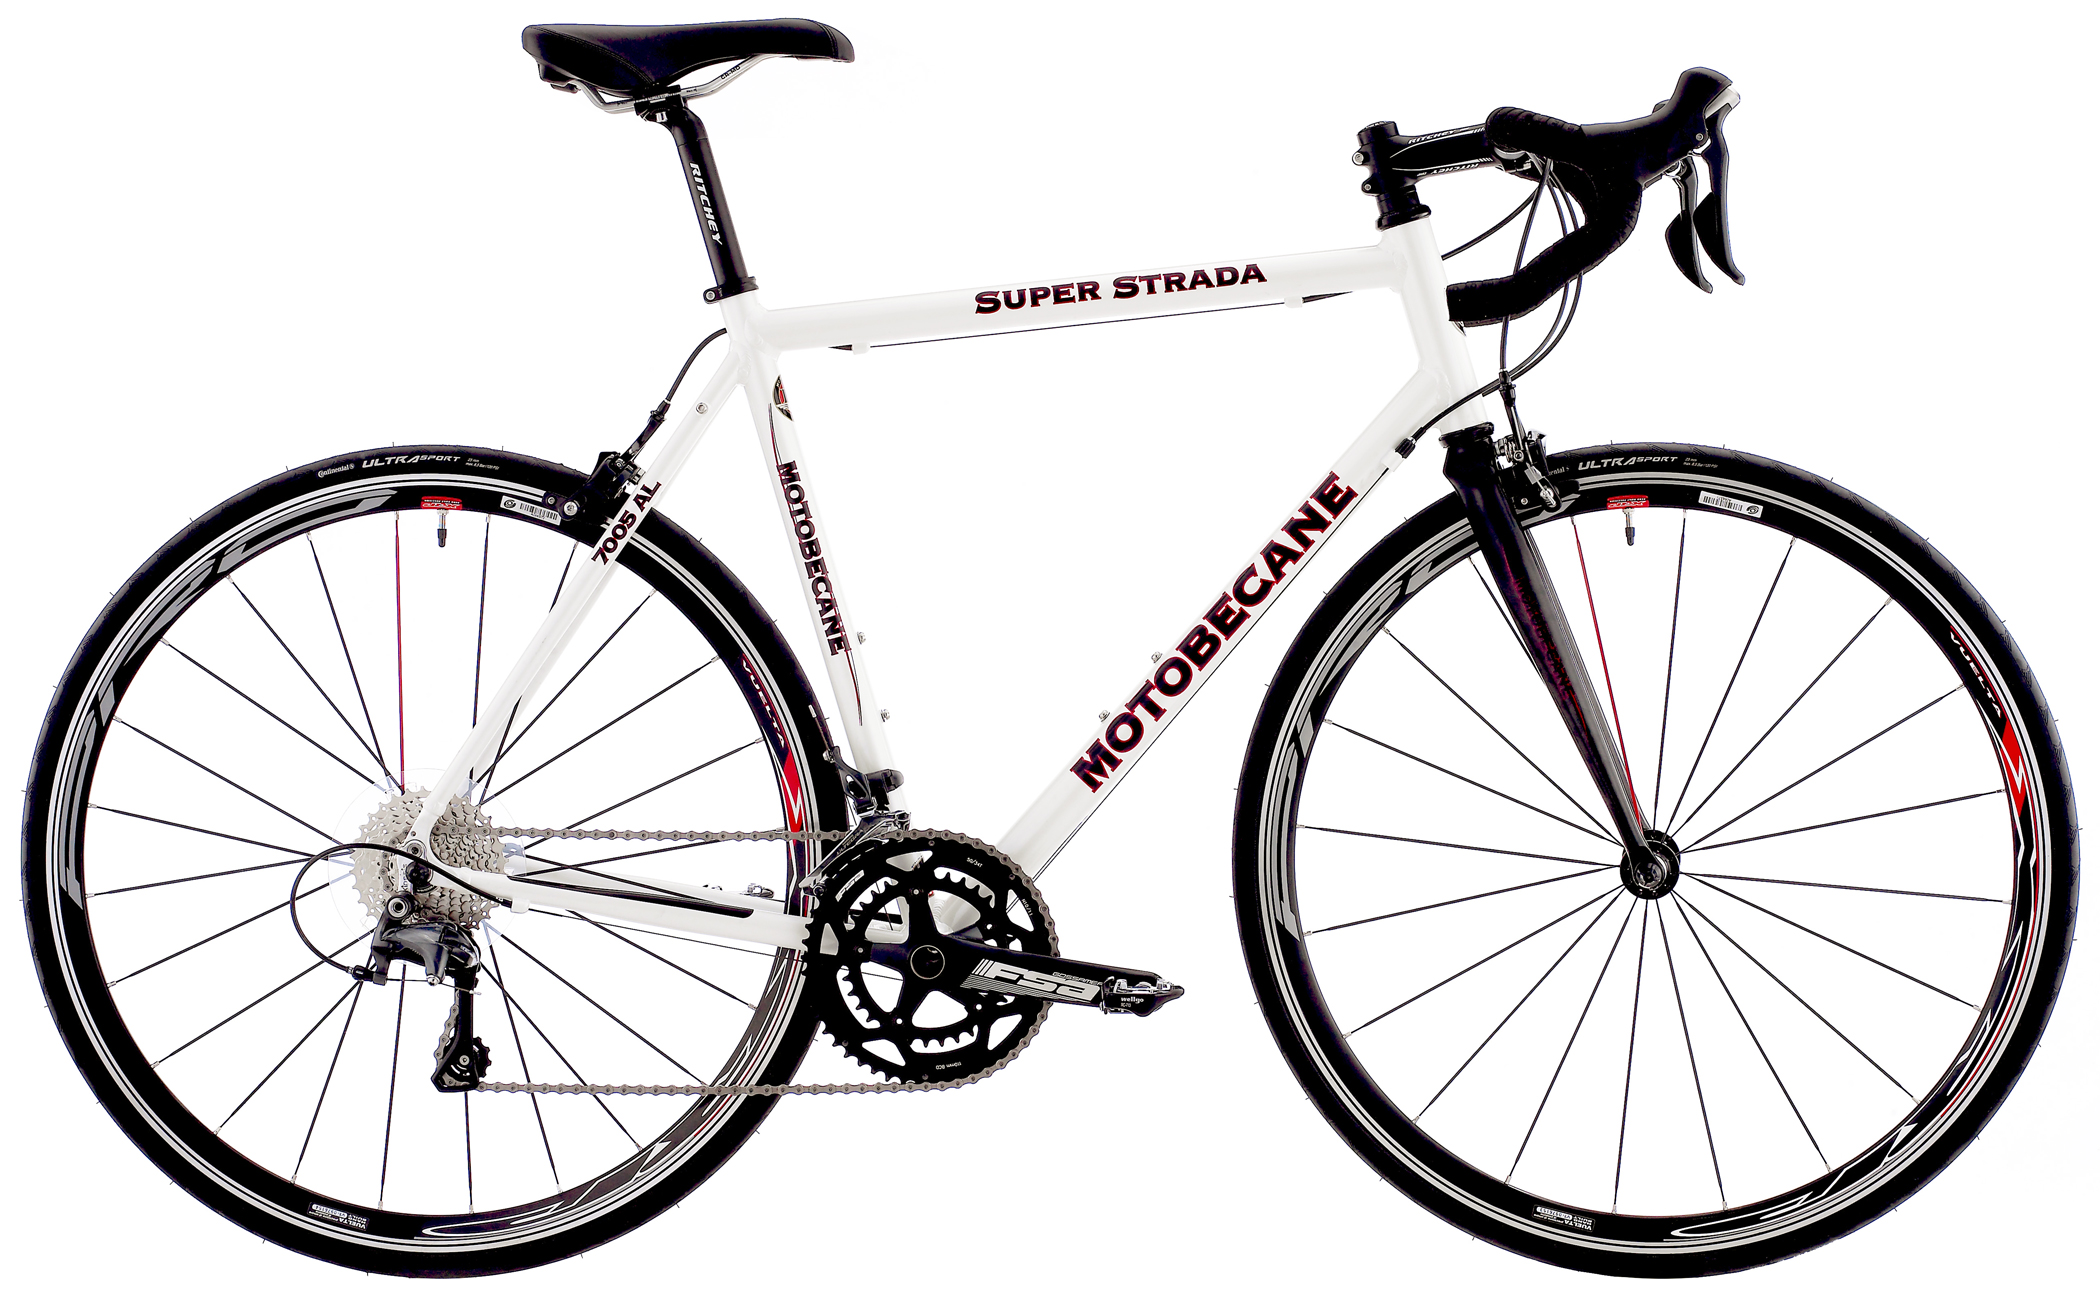 2100x1293 Save Up To 60% Of New Shimano Ultegra 6800 22 Speed Road Bikes